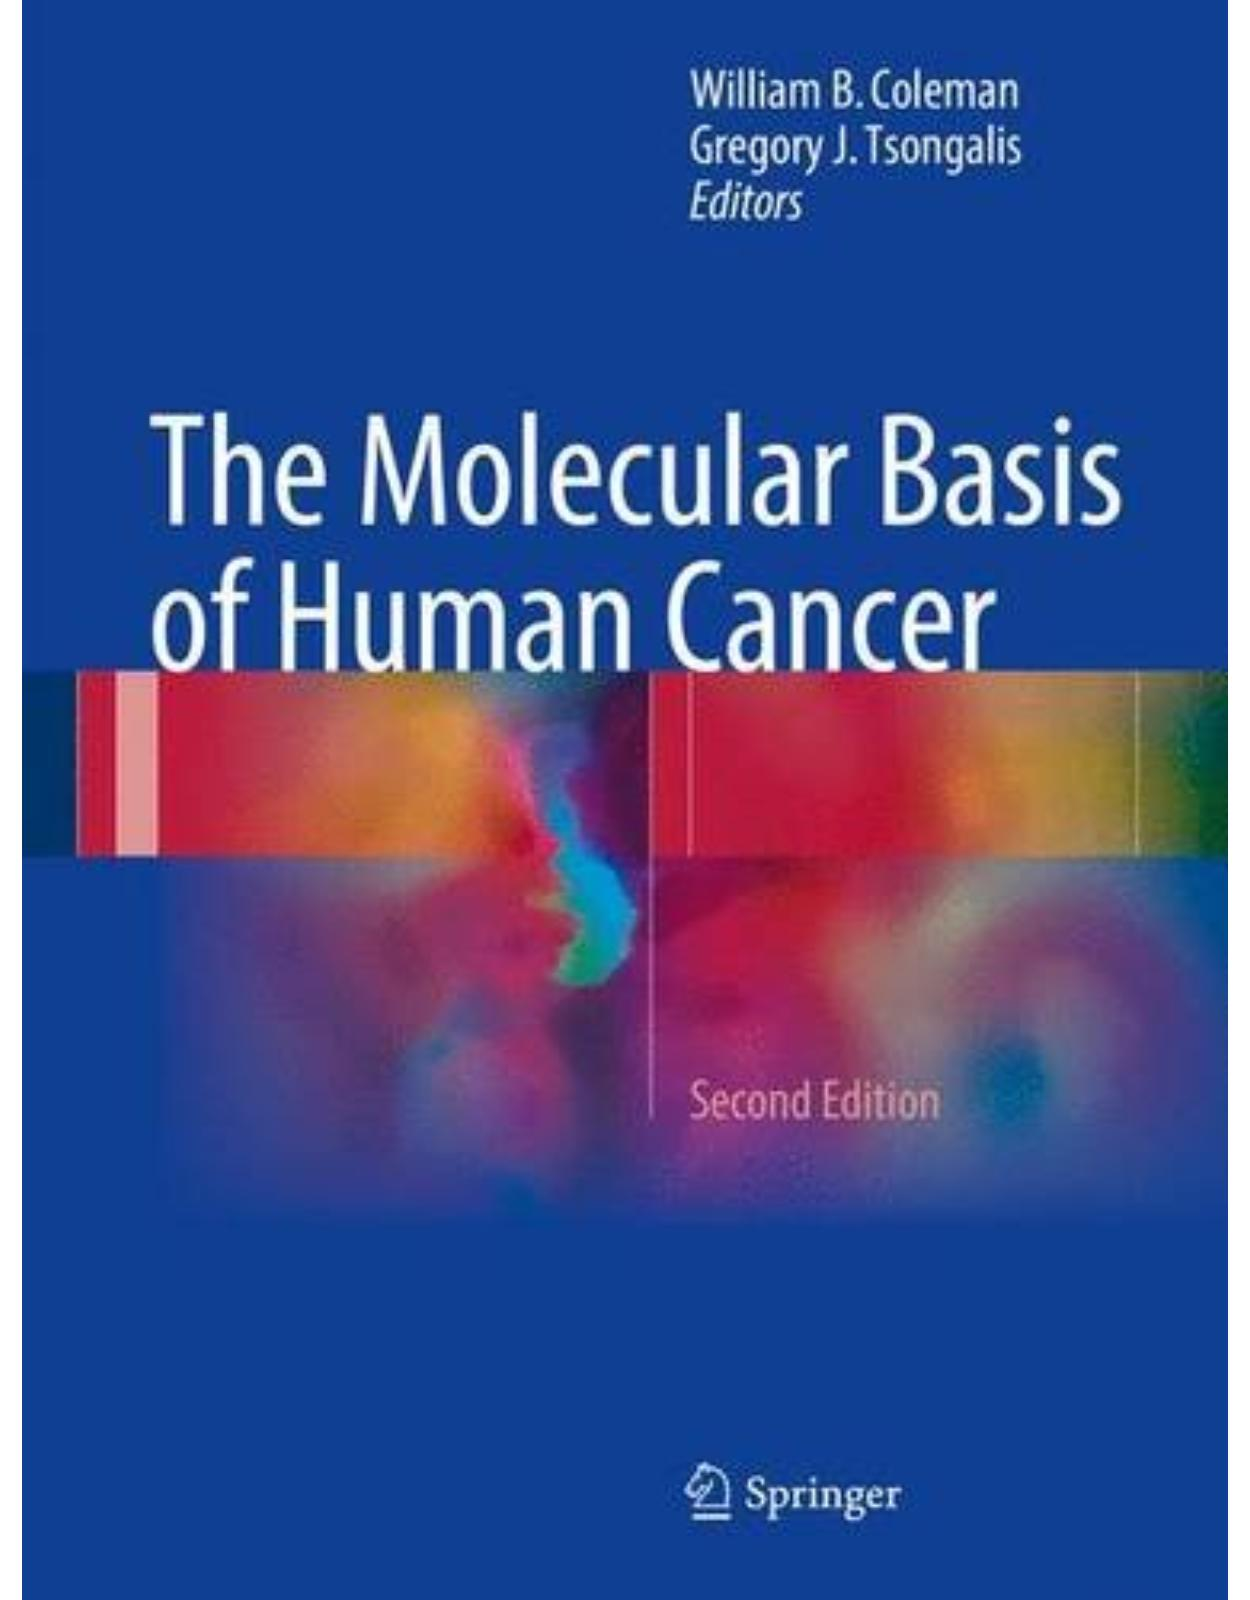 The Molecular Basis of Human Cancer